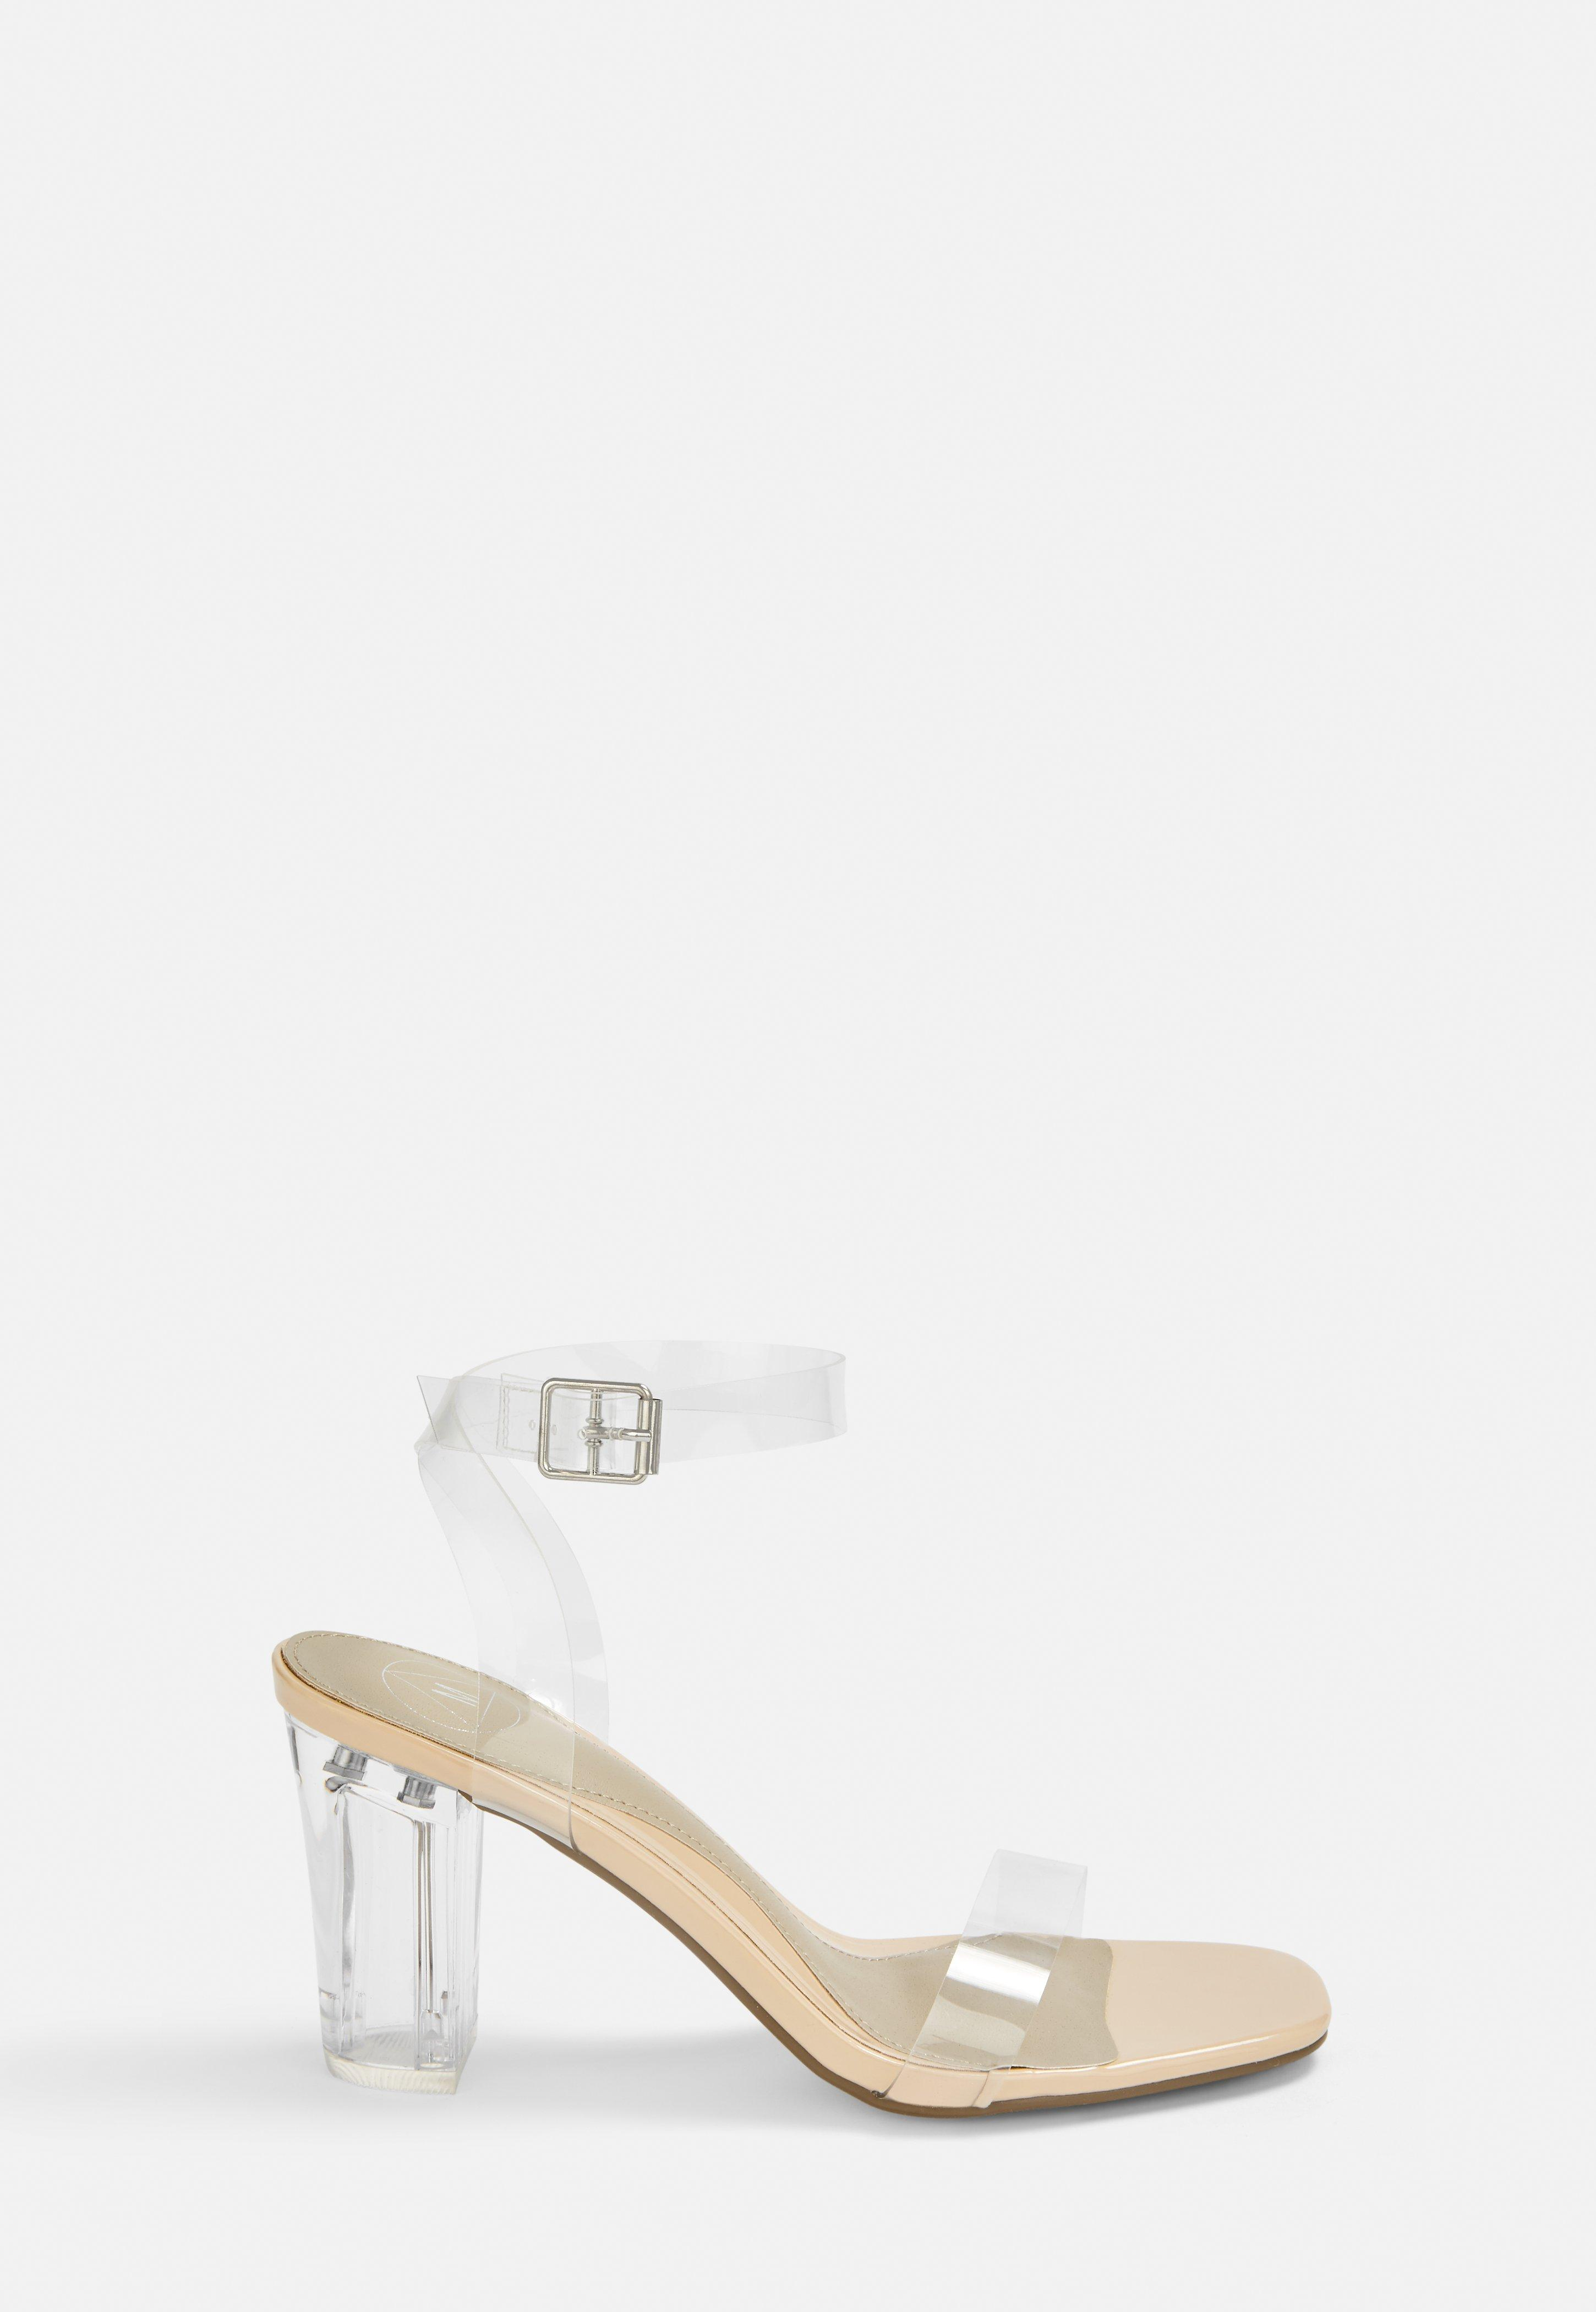 professional sale find lowest price crazy price Nude Clear Mid Block Heels